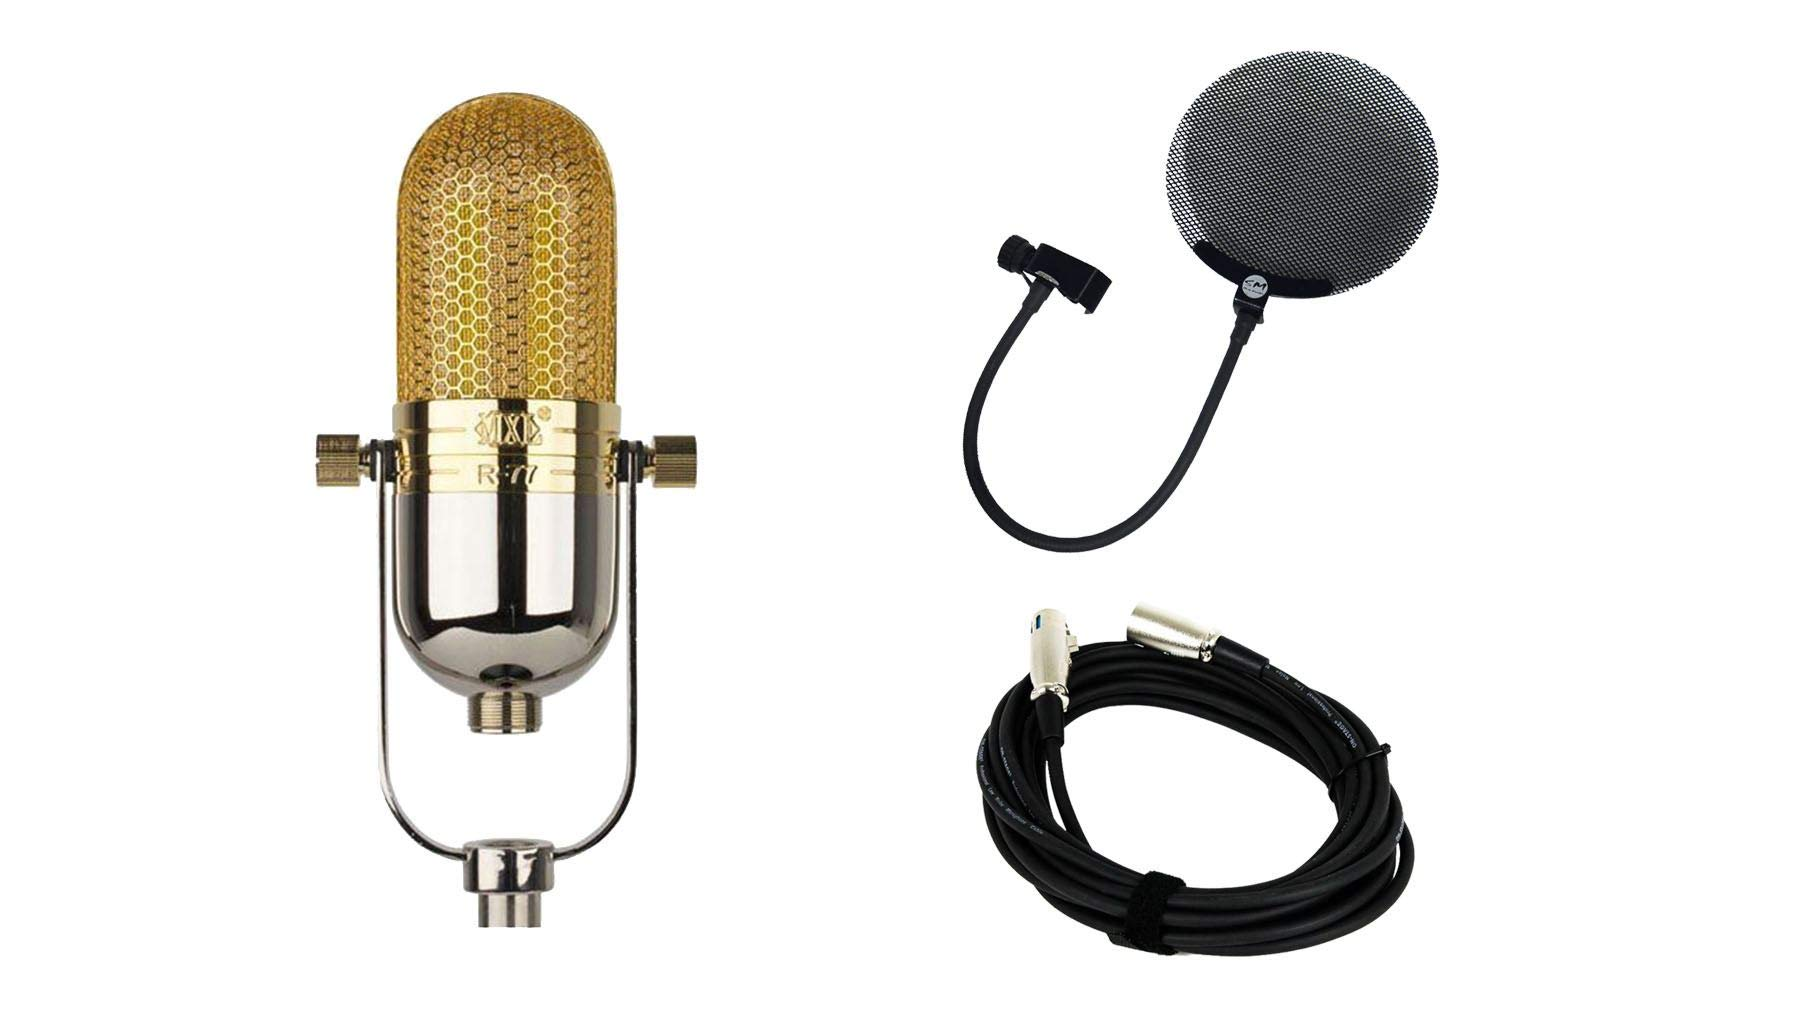 MXL R77 Microphone Bundle with 20-foot XLR Cable & Pop Filter (3 Items)